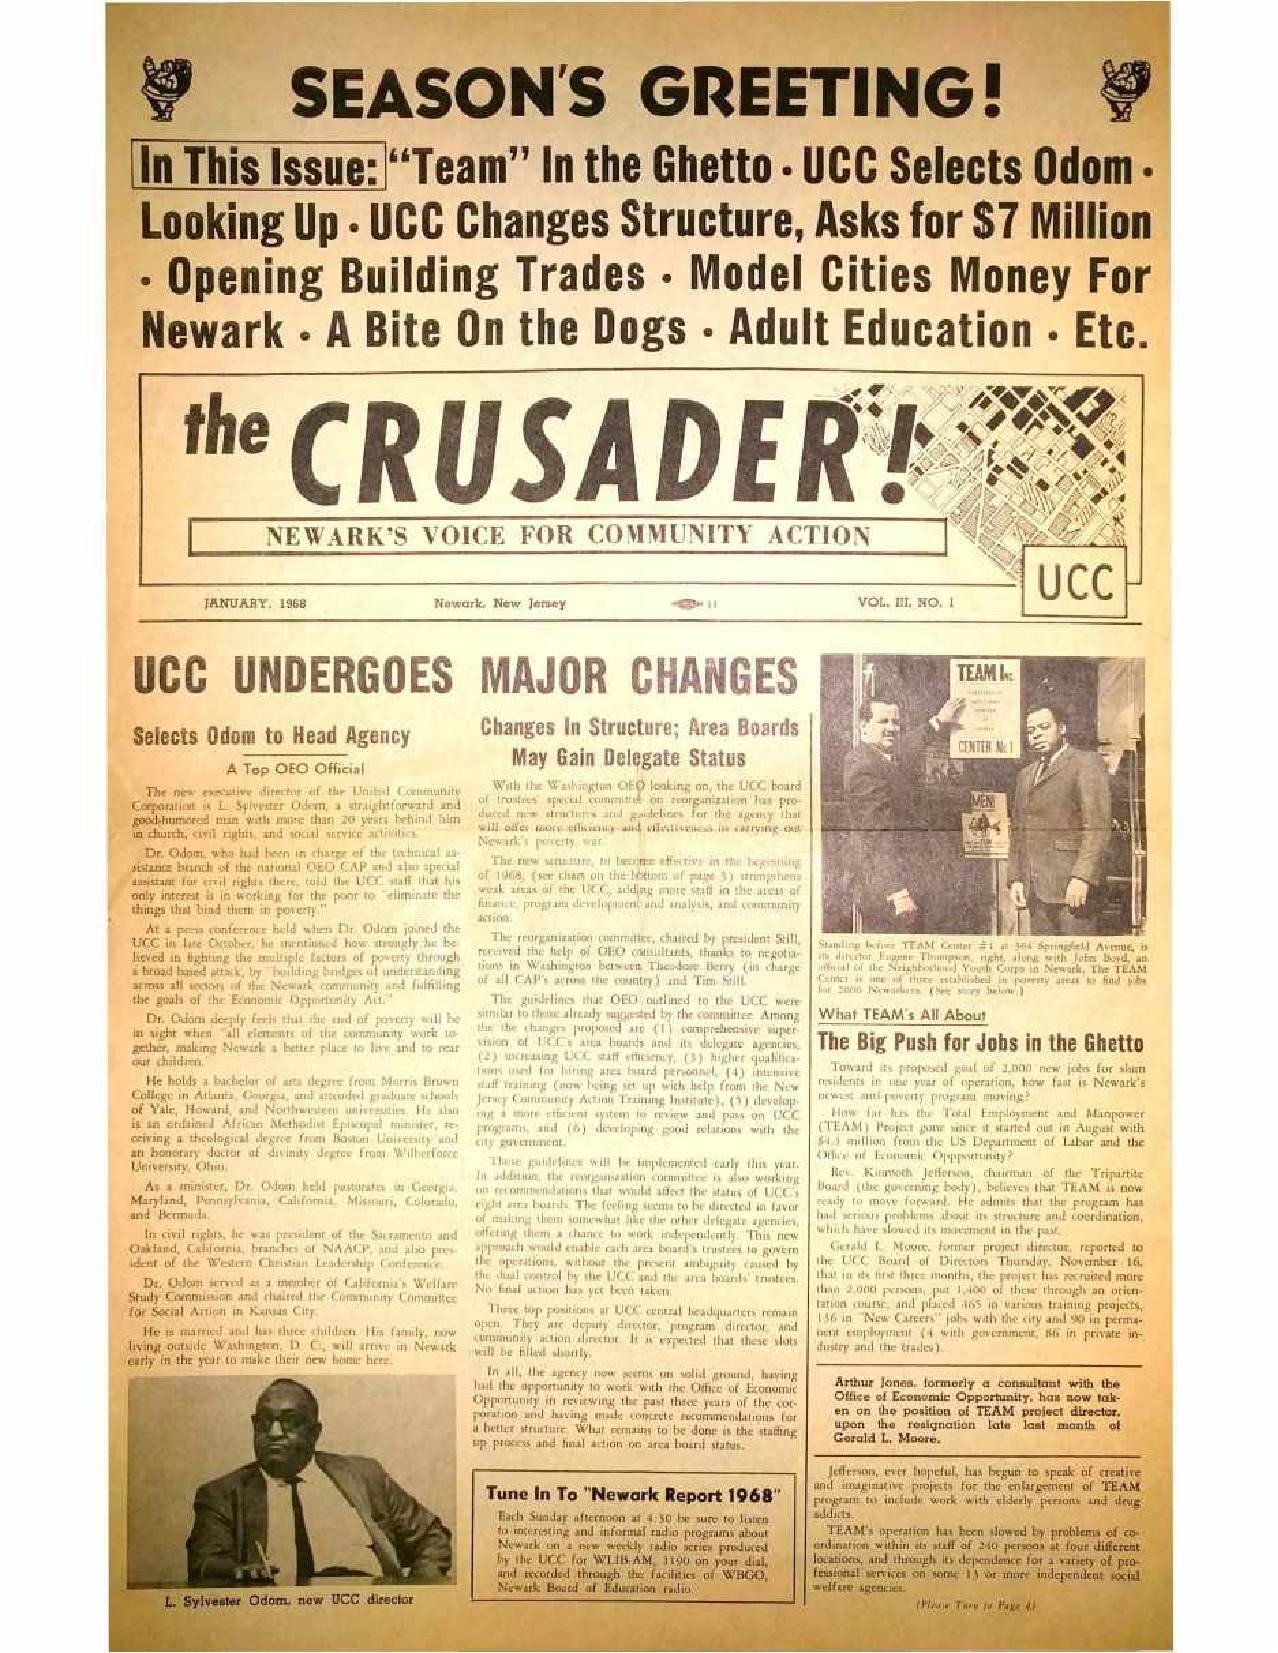 The Crusader (1968)